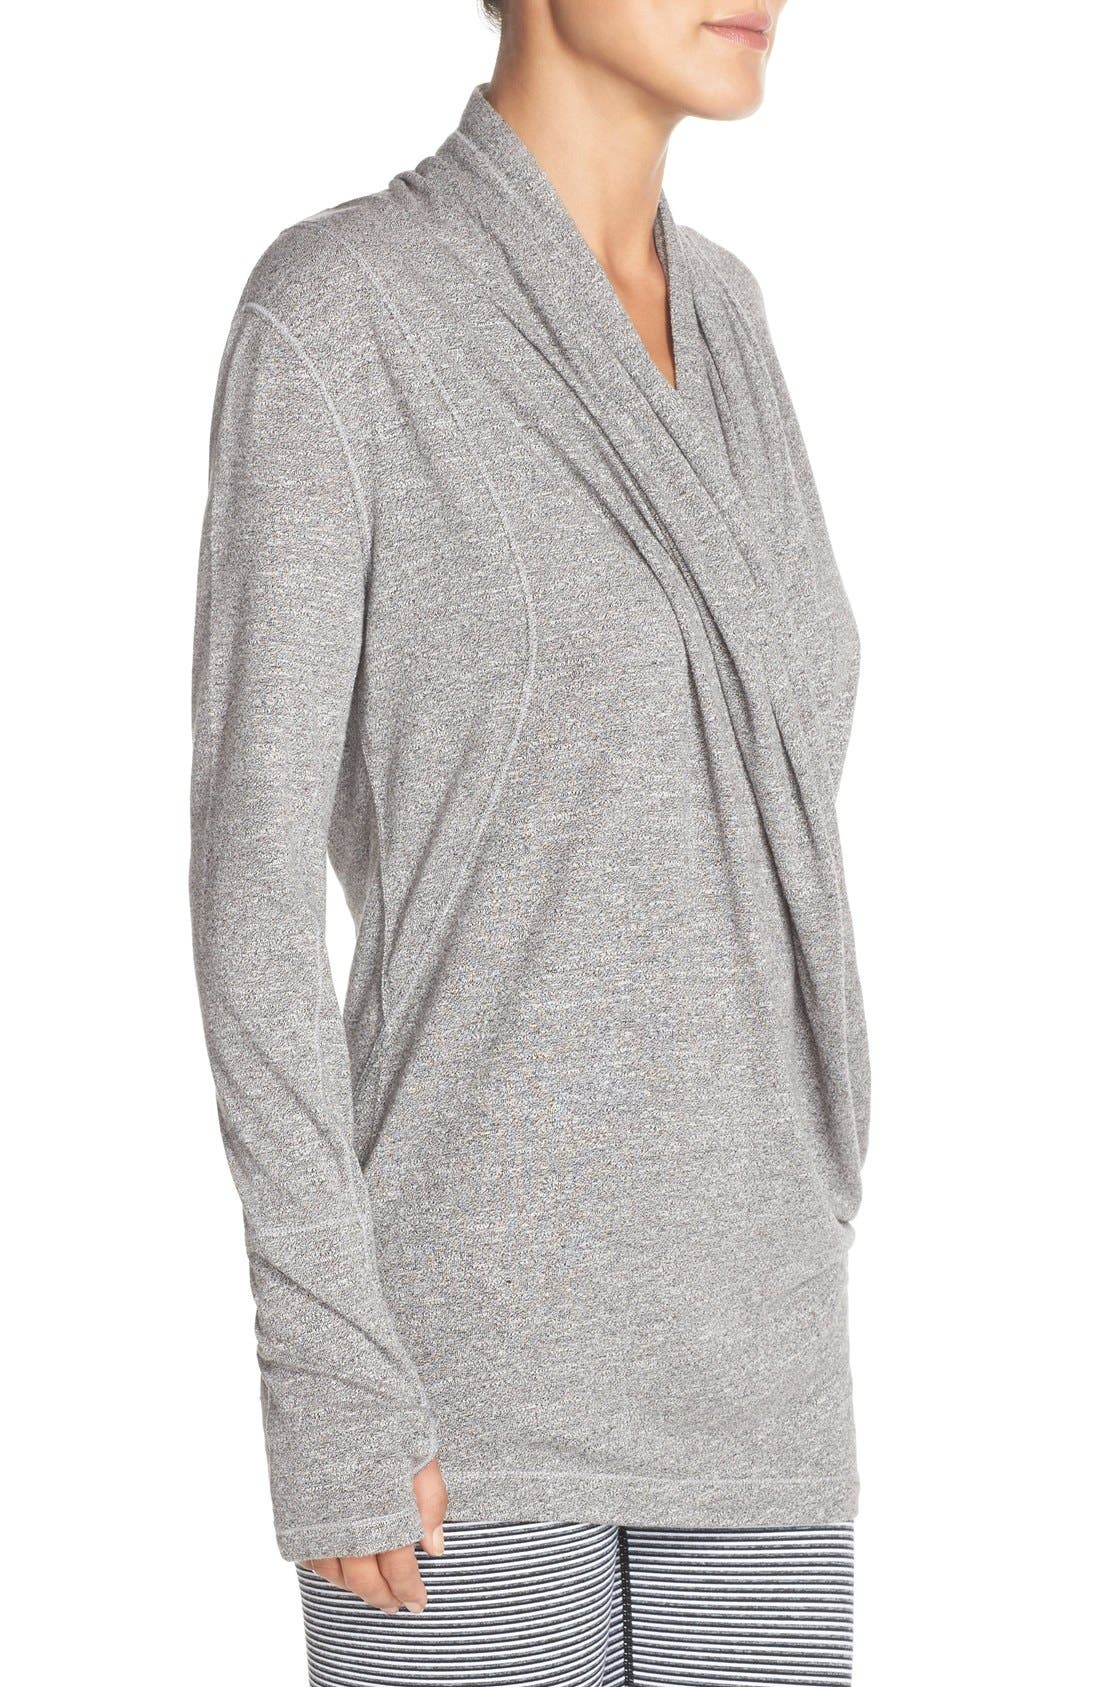 'Enlighten Me' Cardigan,                             Alternate thumbnail 3, color,                             Grey Harem